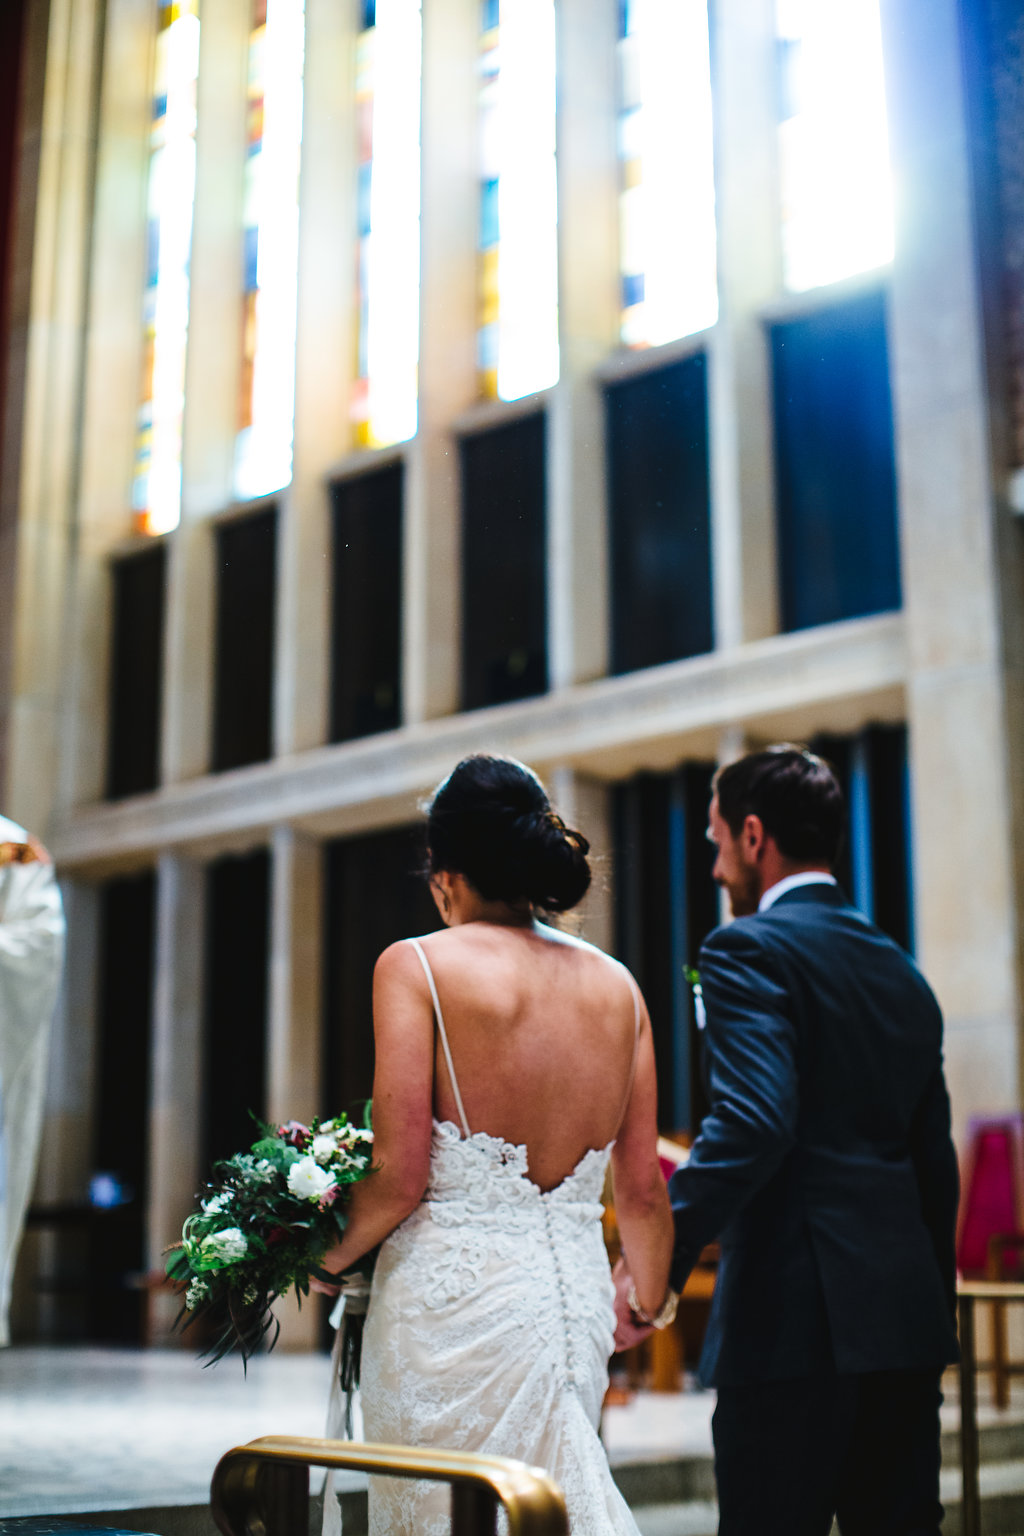 Aaron Rice Photography   Annunciation Ceremony   Day Block Wedding Reception   Sixpence Events and Planning Minnesota Wedding planner 28.jpg